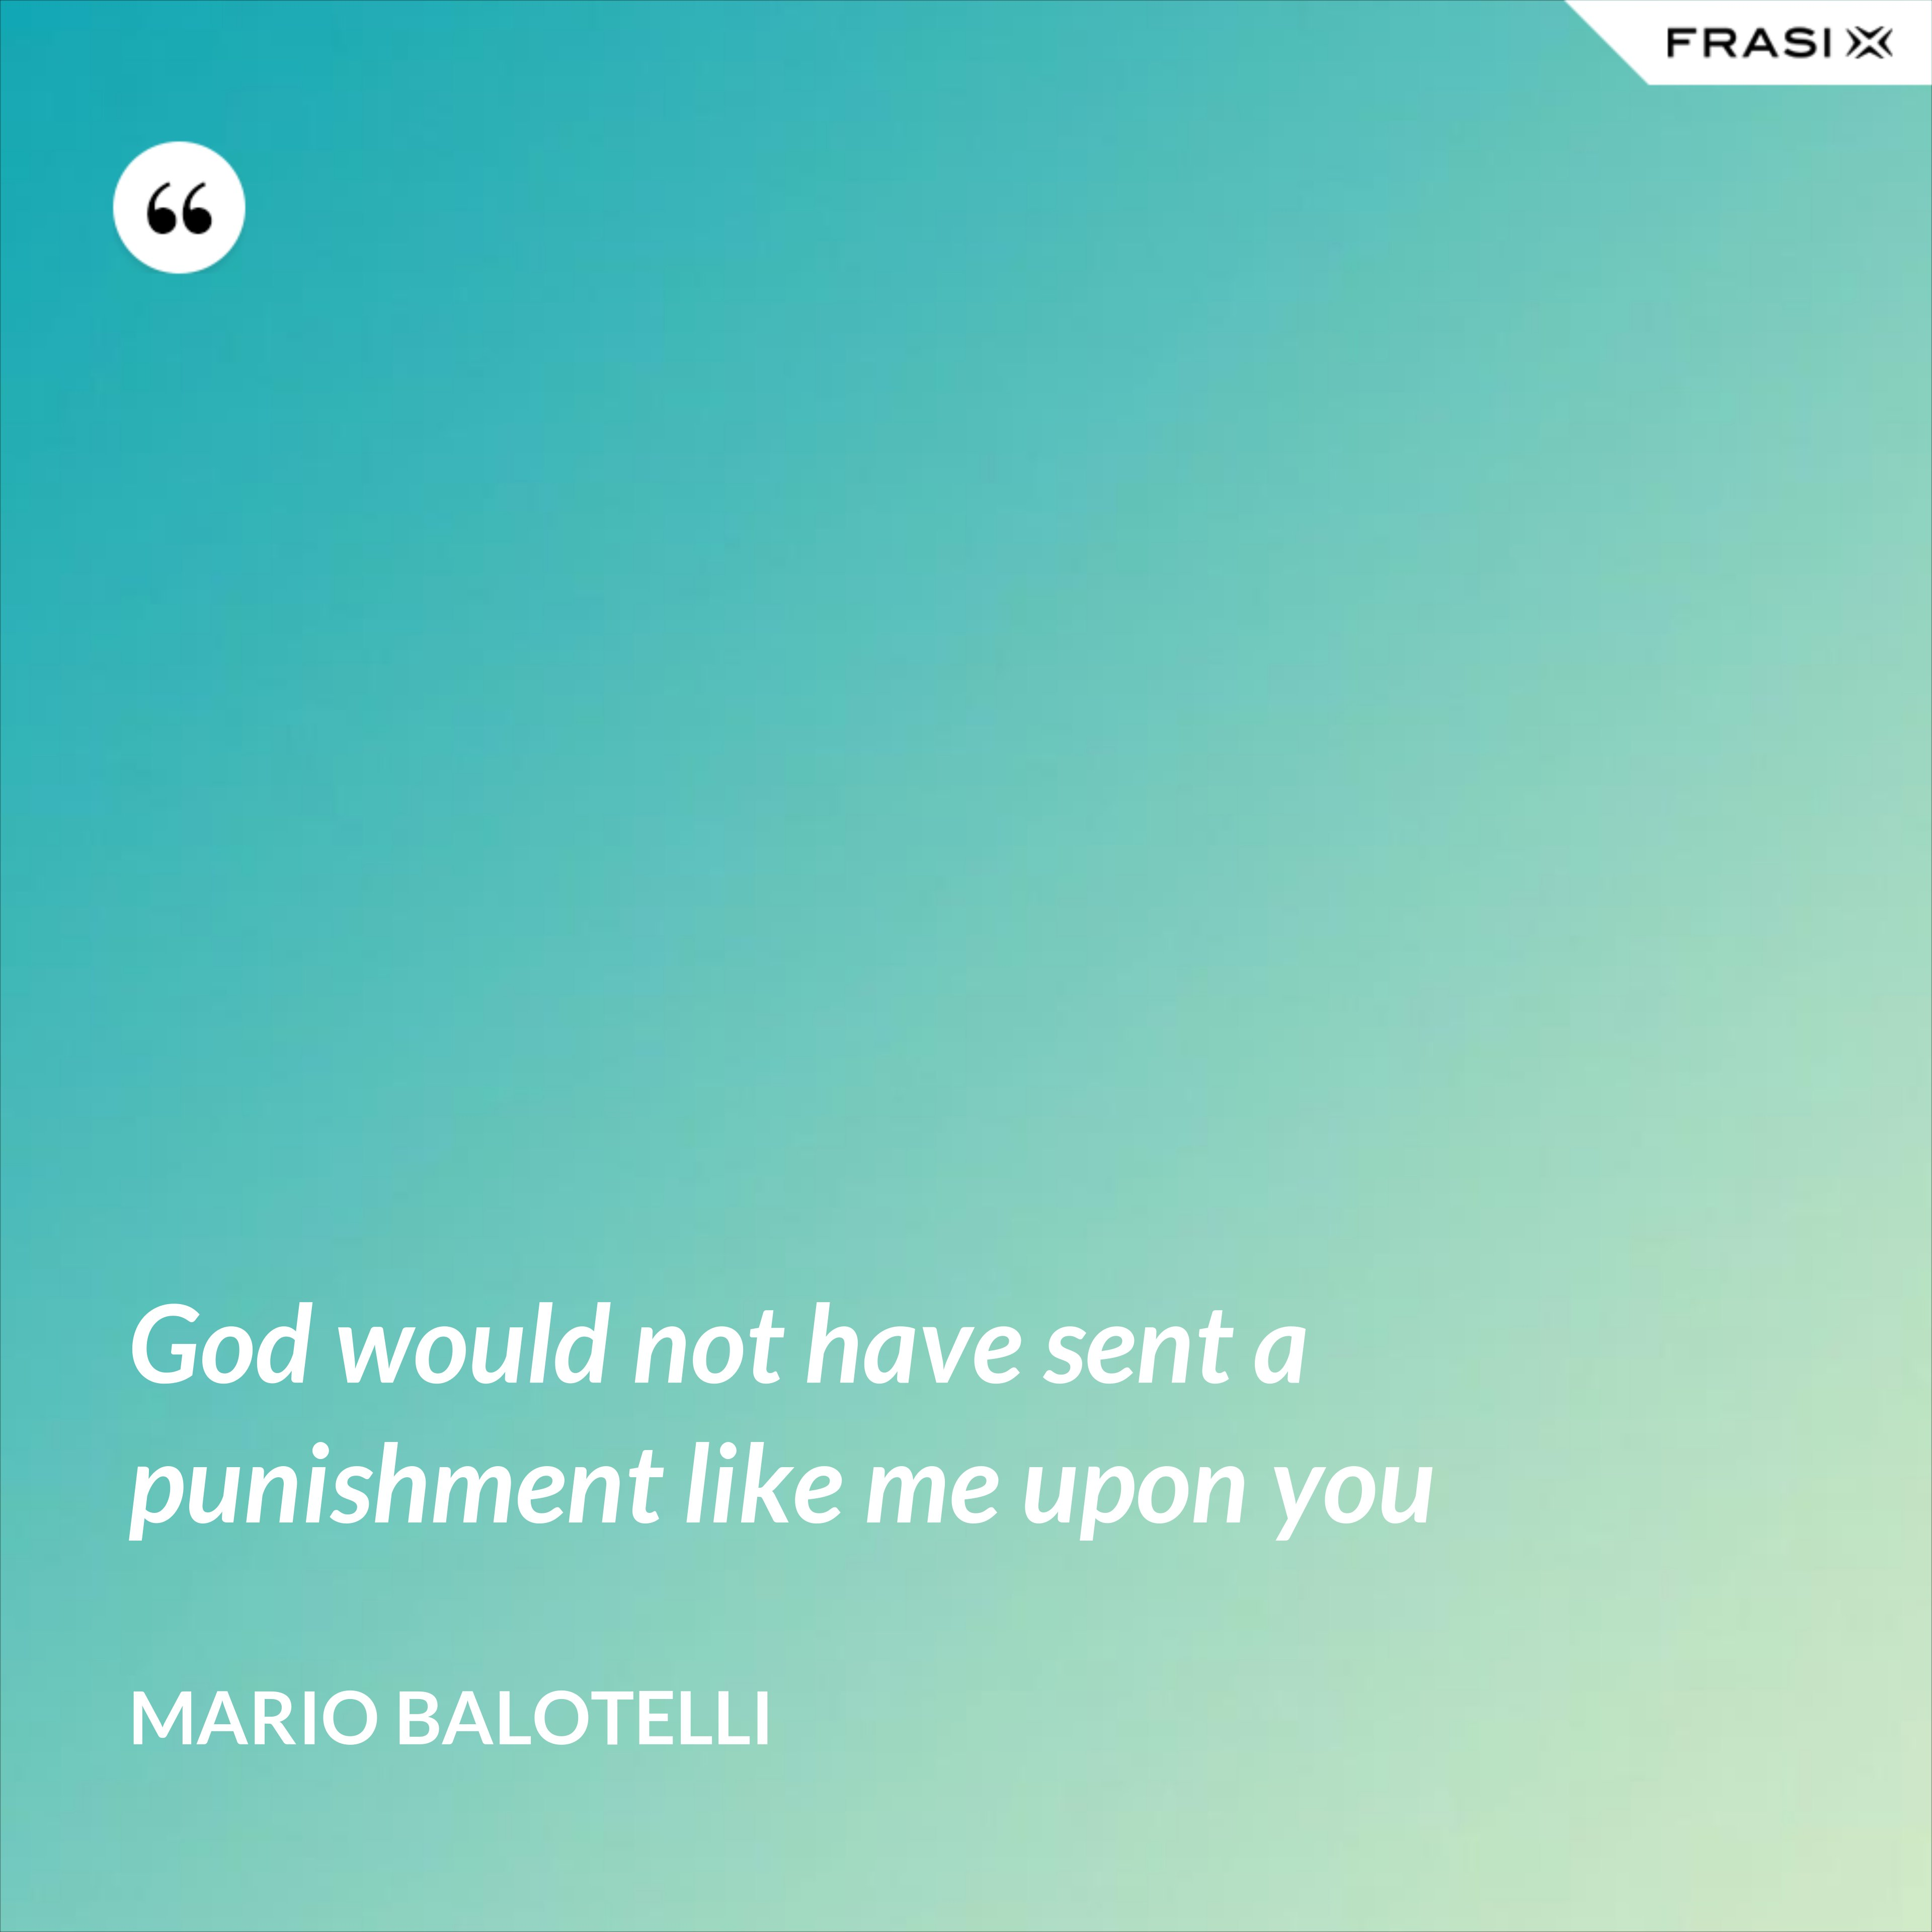 God would not have sent a punishment like me upon you - Mario Balotelli